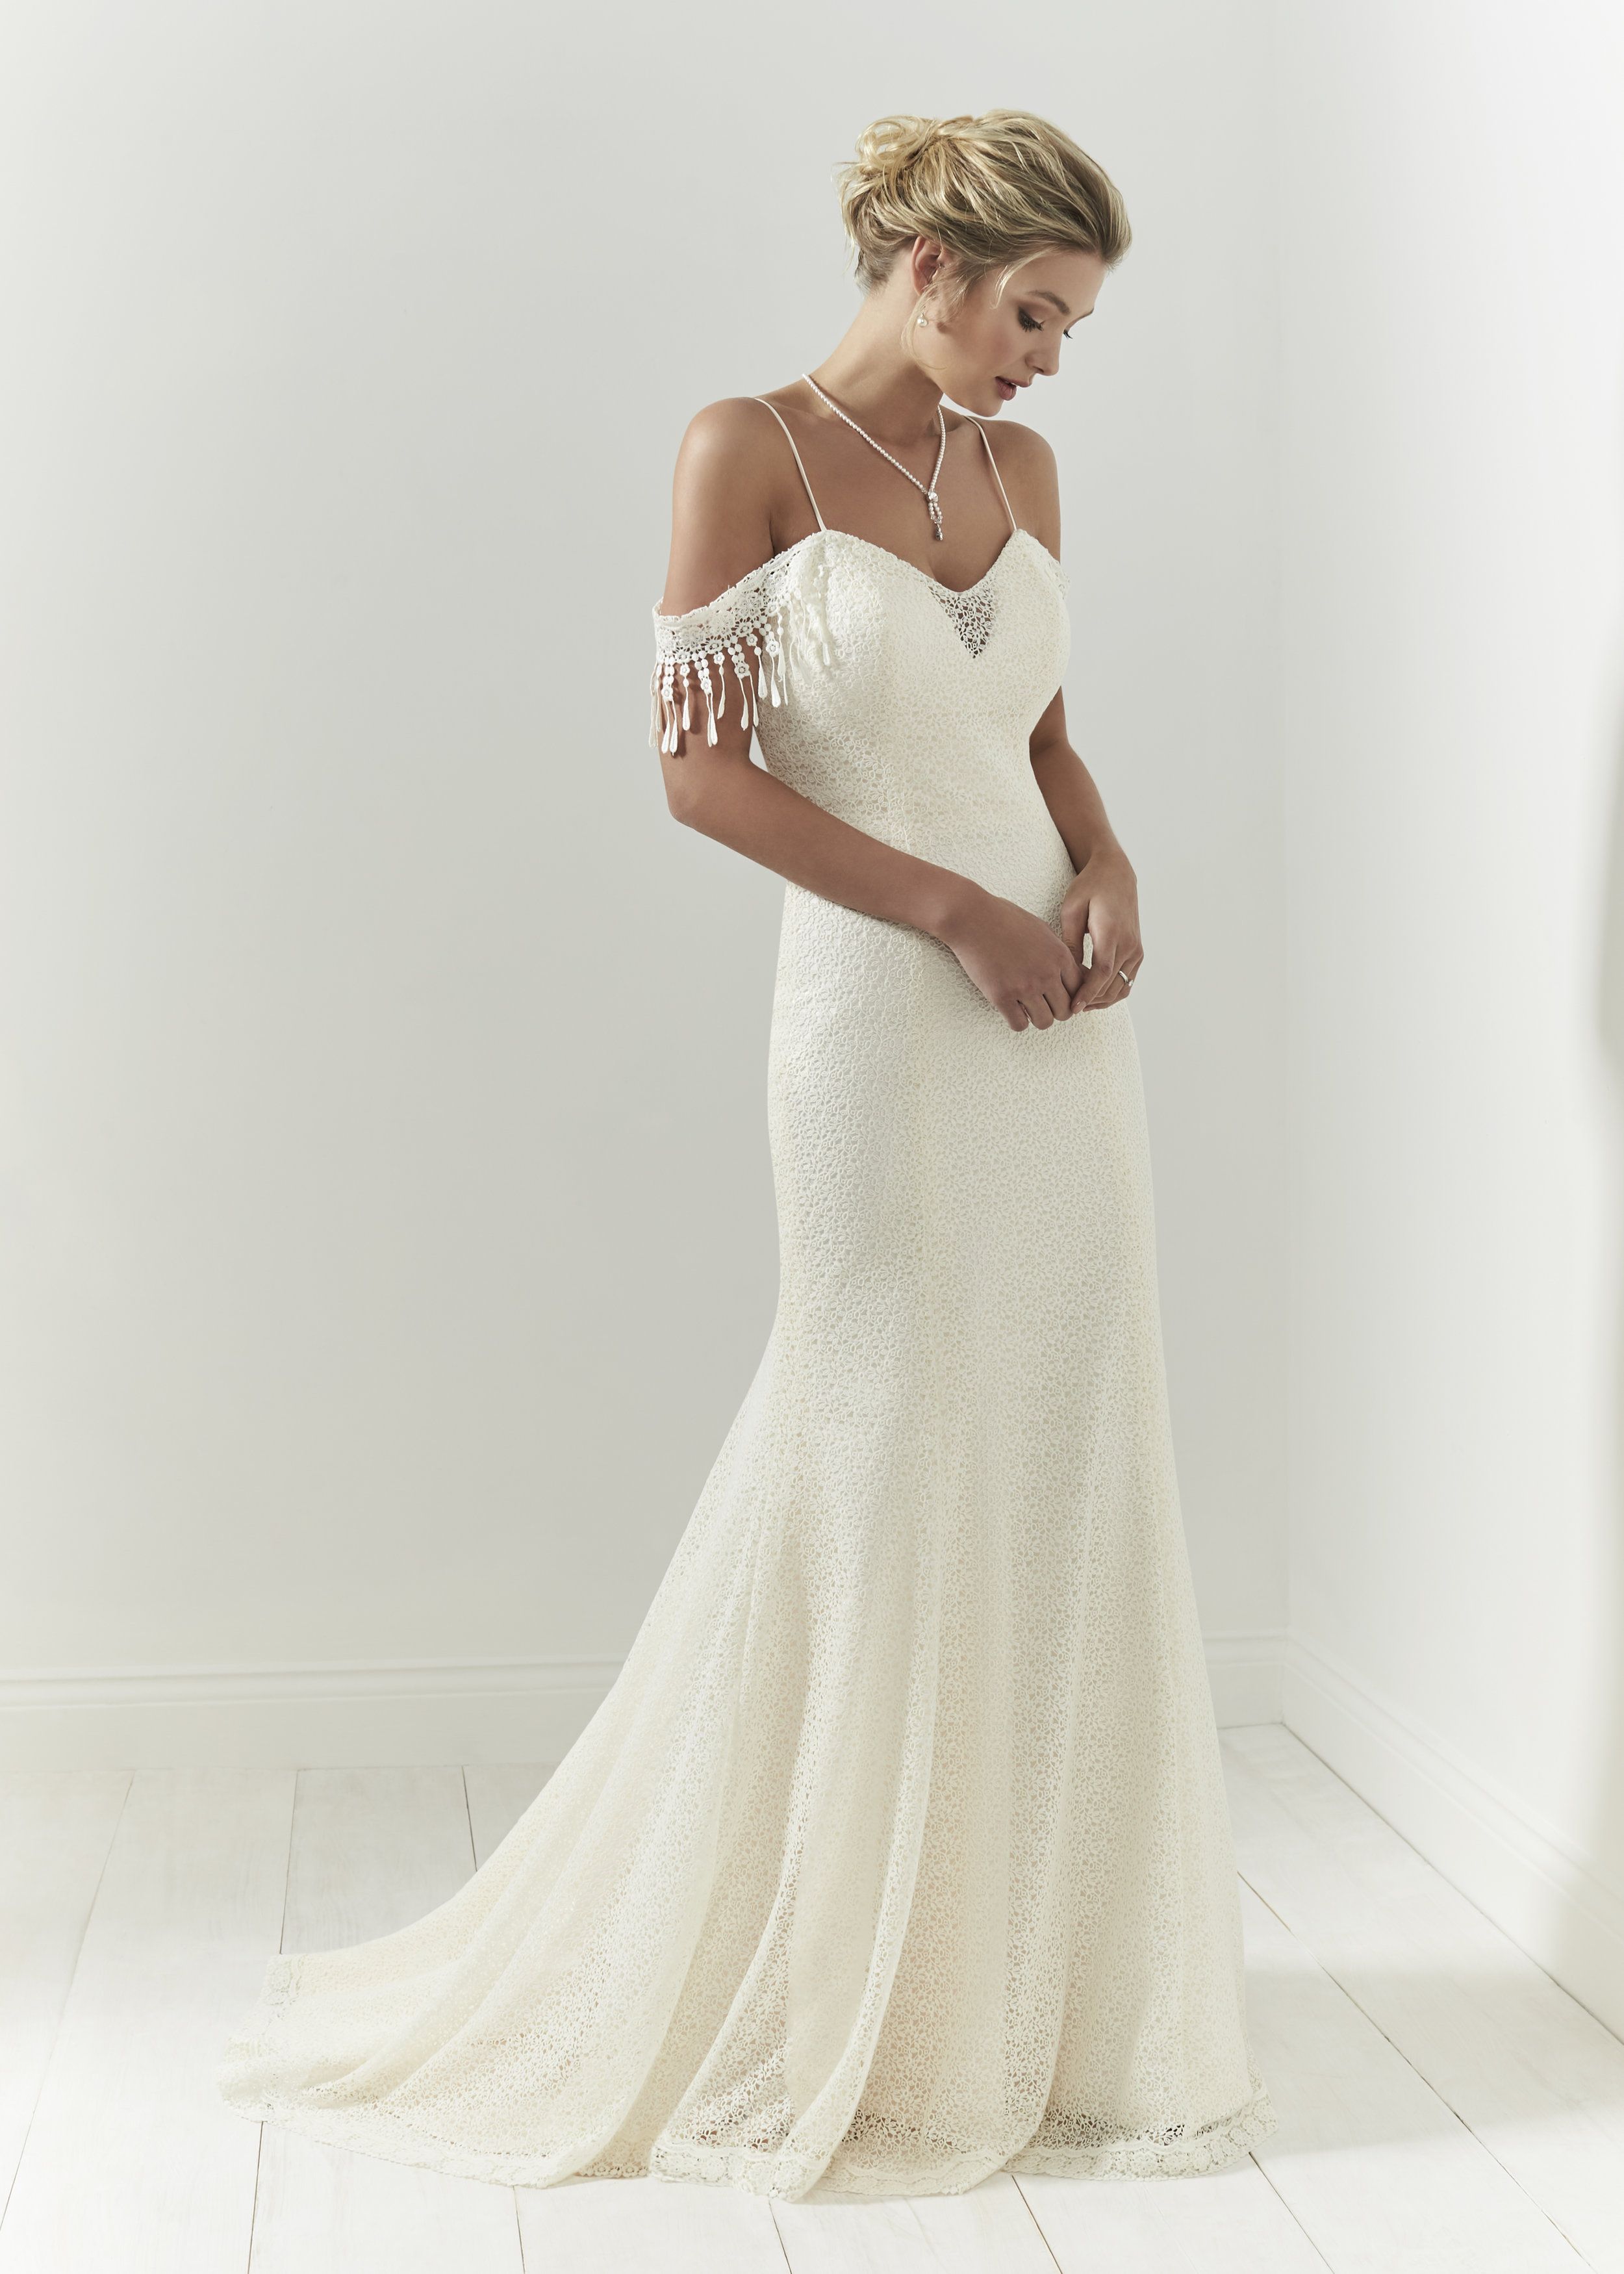 PeachLeaf by Olivia Rose Bridal - available now to try!